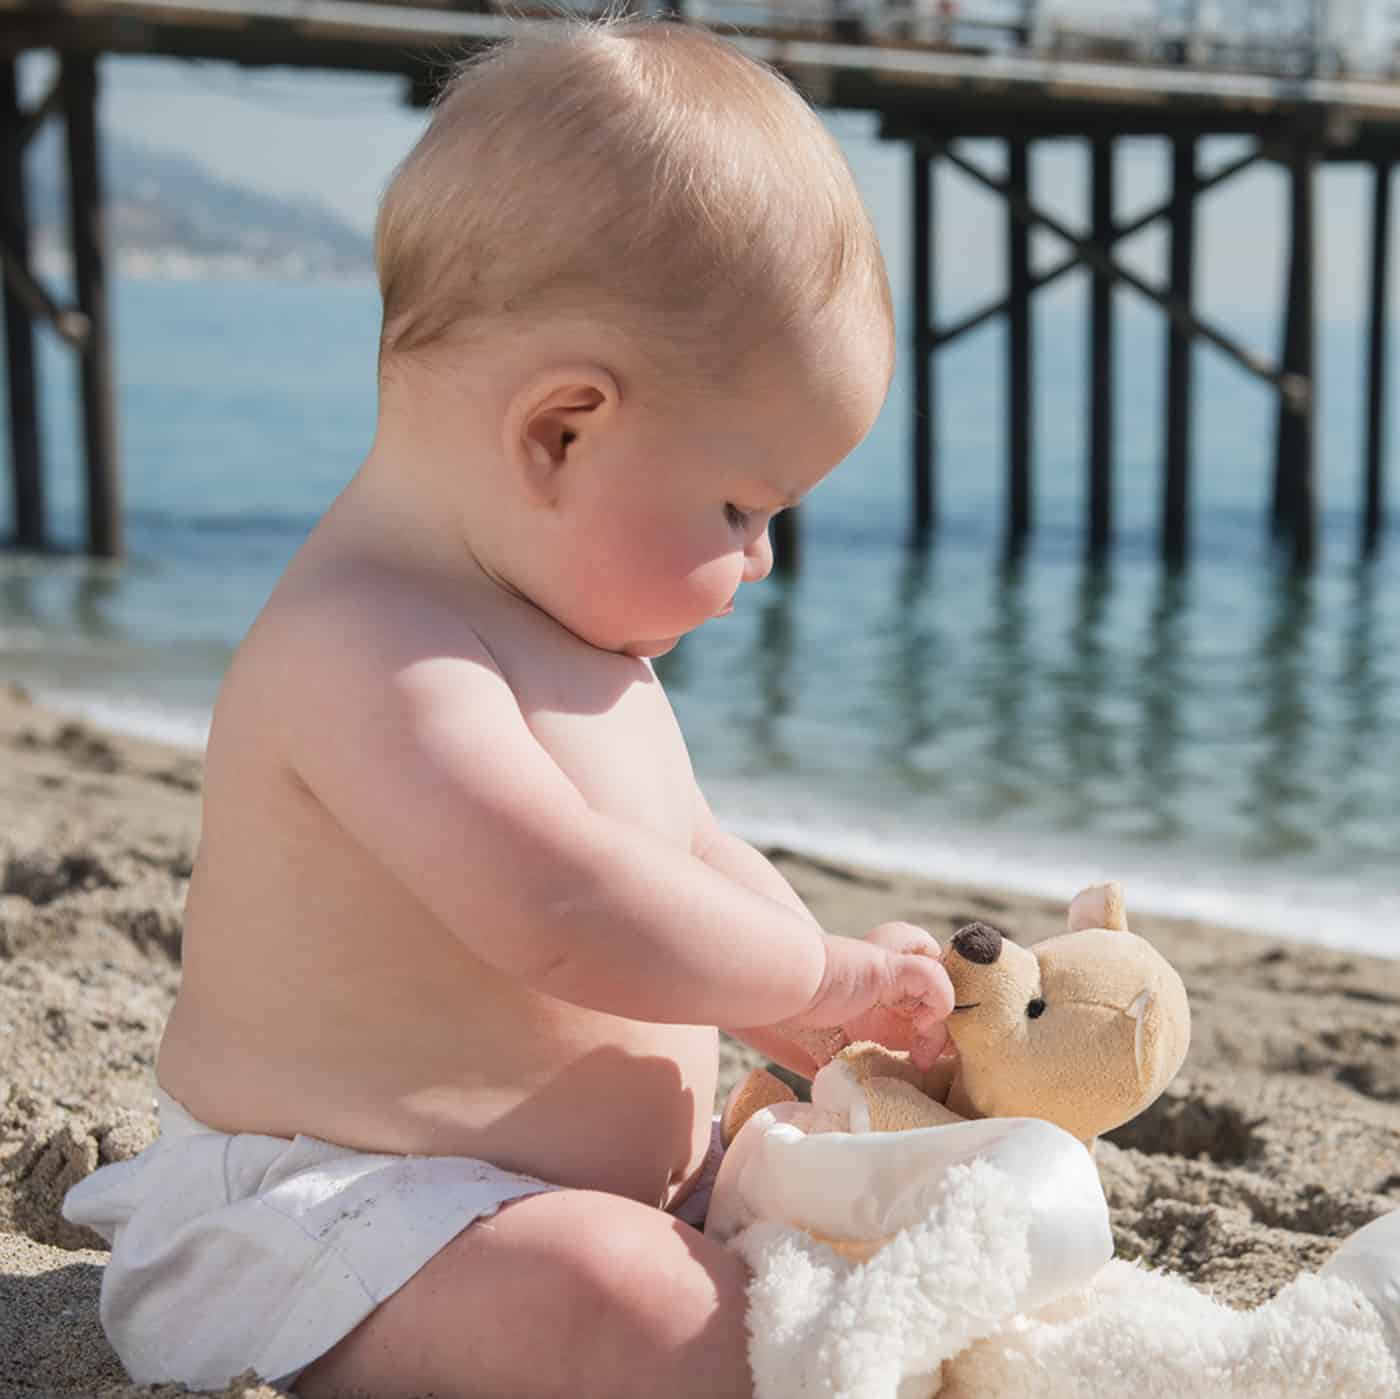 Educational Benefits of Providing Toys To Children